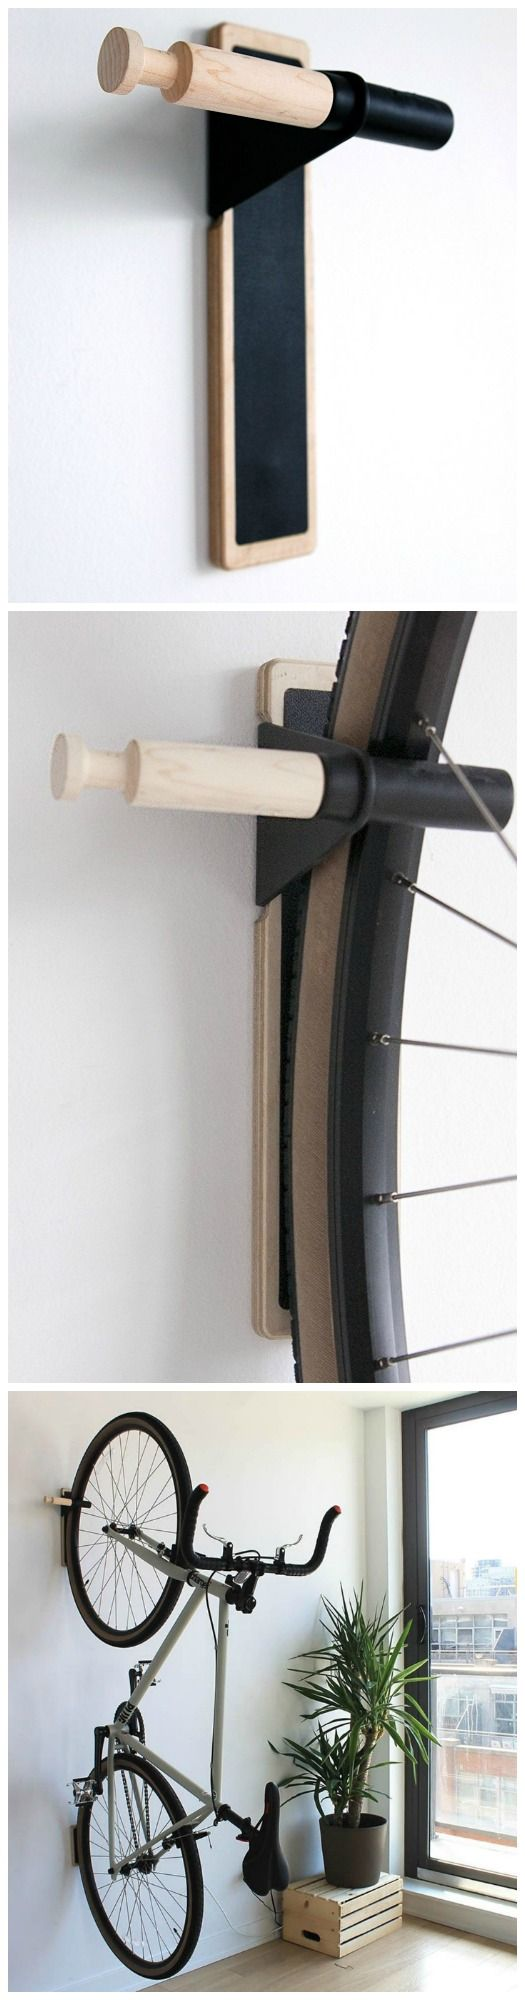 Lift Wooden Minimalist Bike Hook. Simple, clean and functional. #affiliate